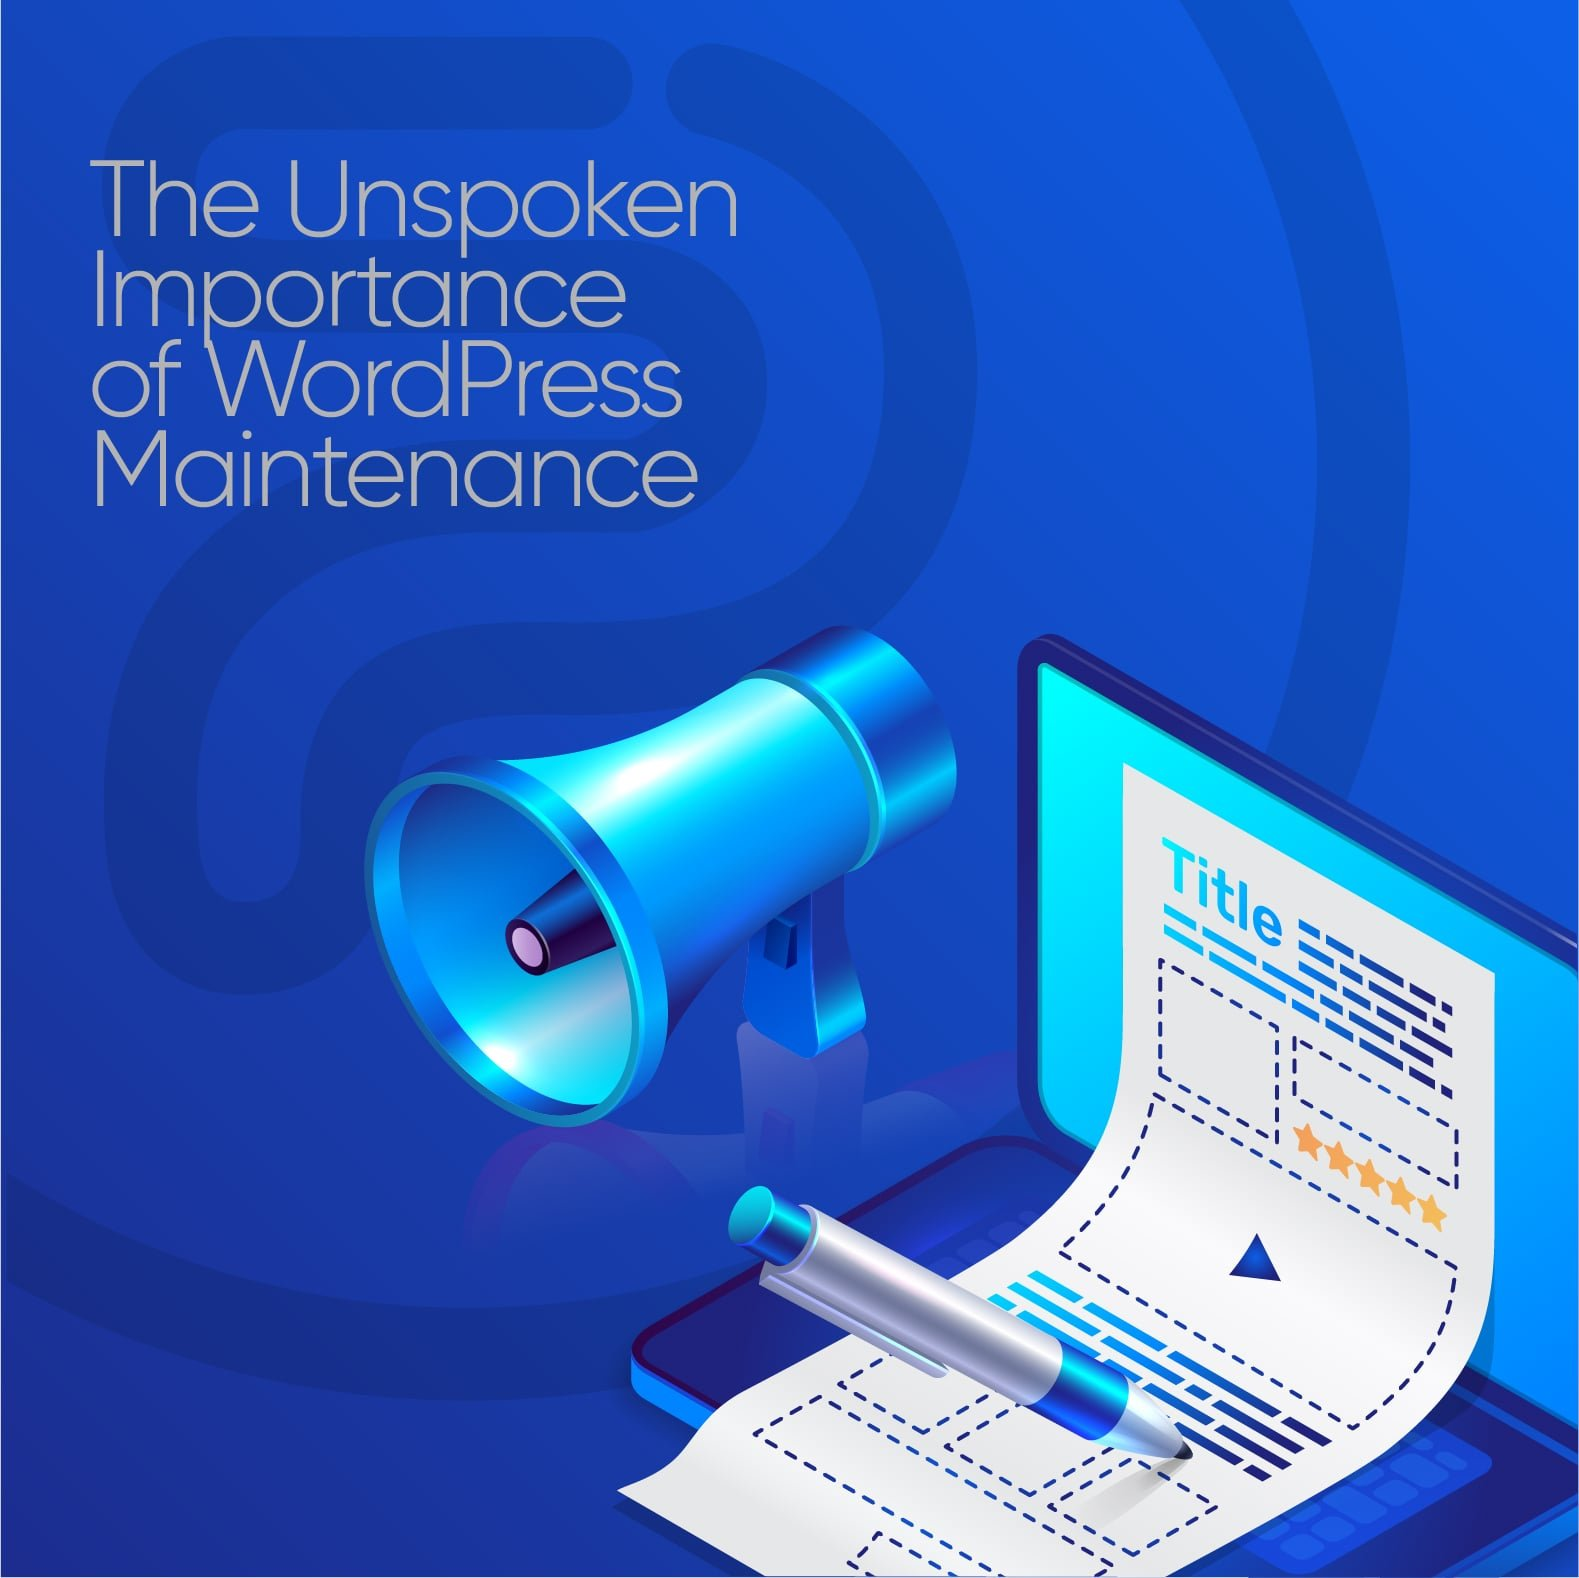 54912The Unspoken Importance of WordPress Maintenance